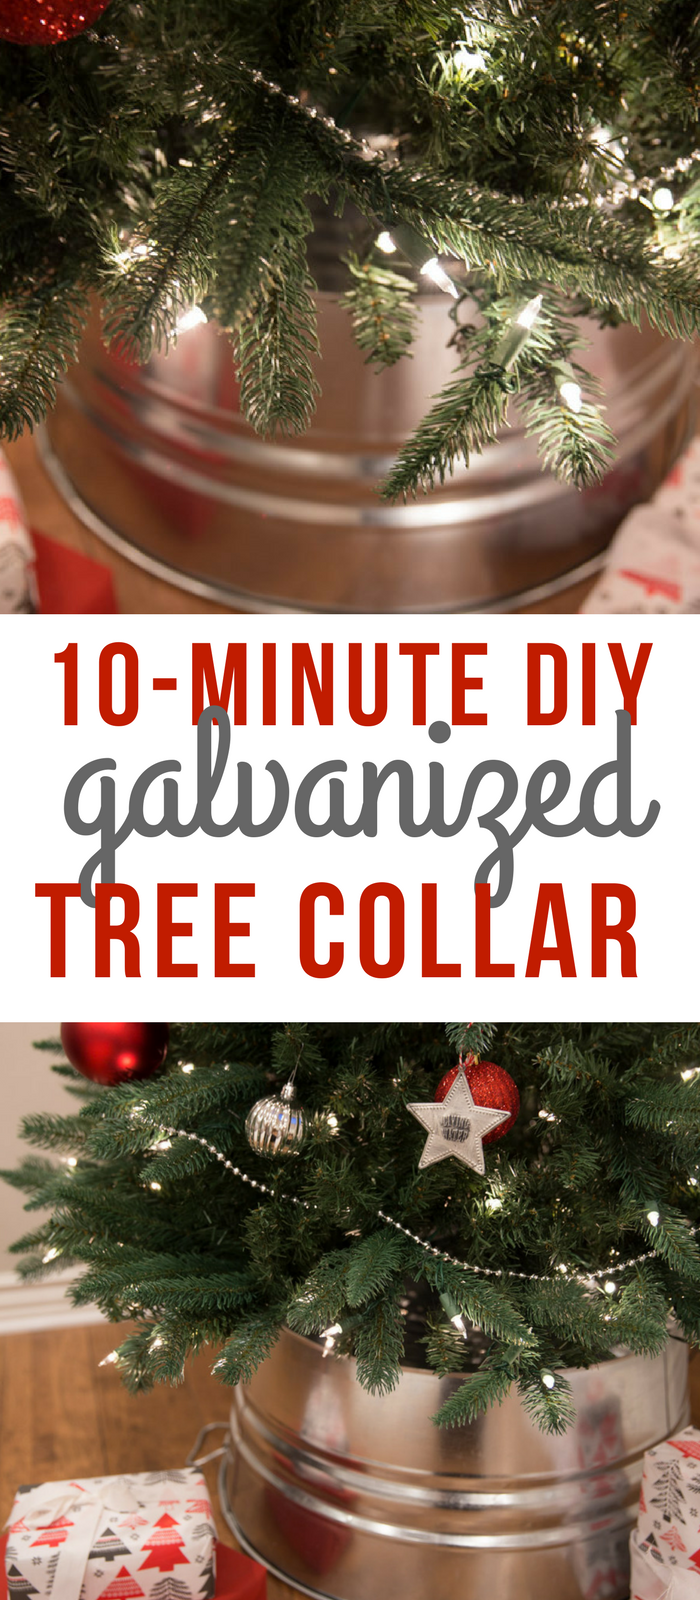 Galvanized Tree Collar in 10 Minutes StepbyStep